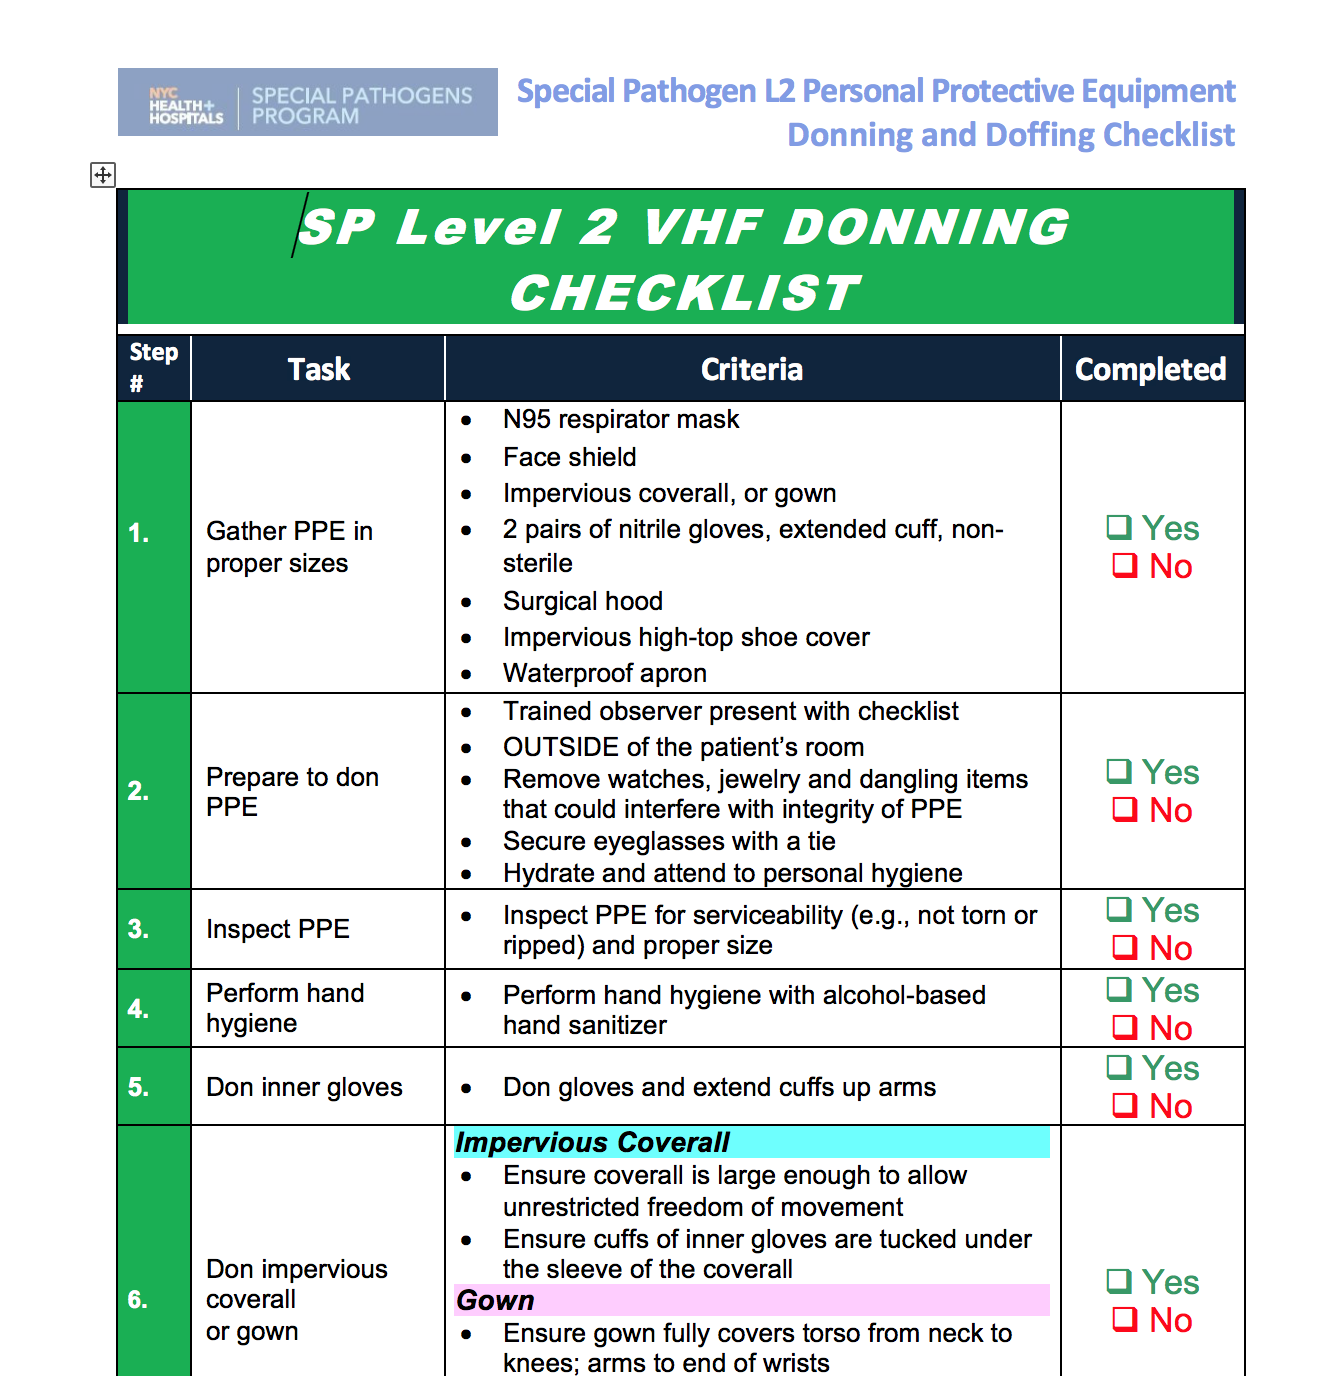 (05) SP L2 Donning and Doffing Checklist (V.1.9 072819).docx